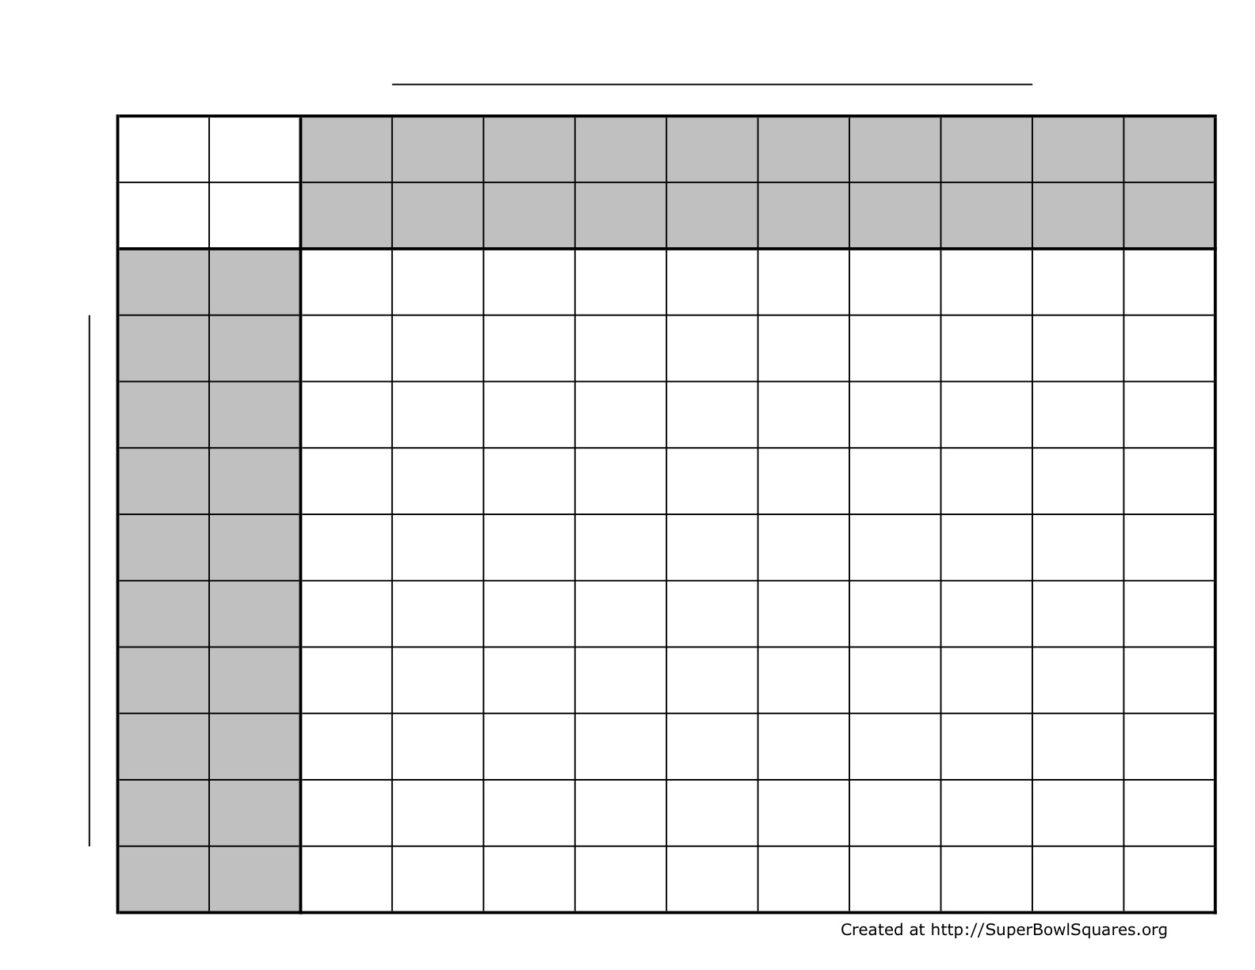 Football Spreadsheet With Football Squares  Super Bowl Squares  Play Football Squares Online